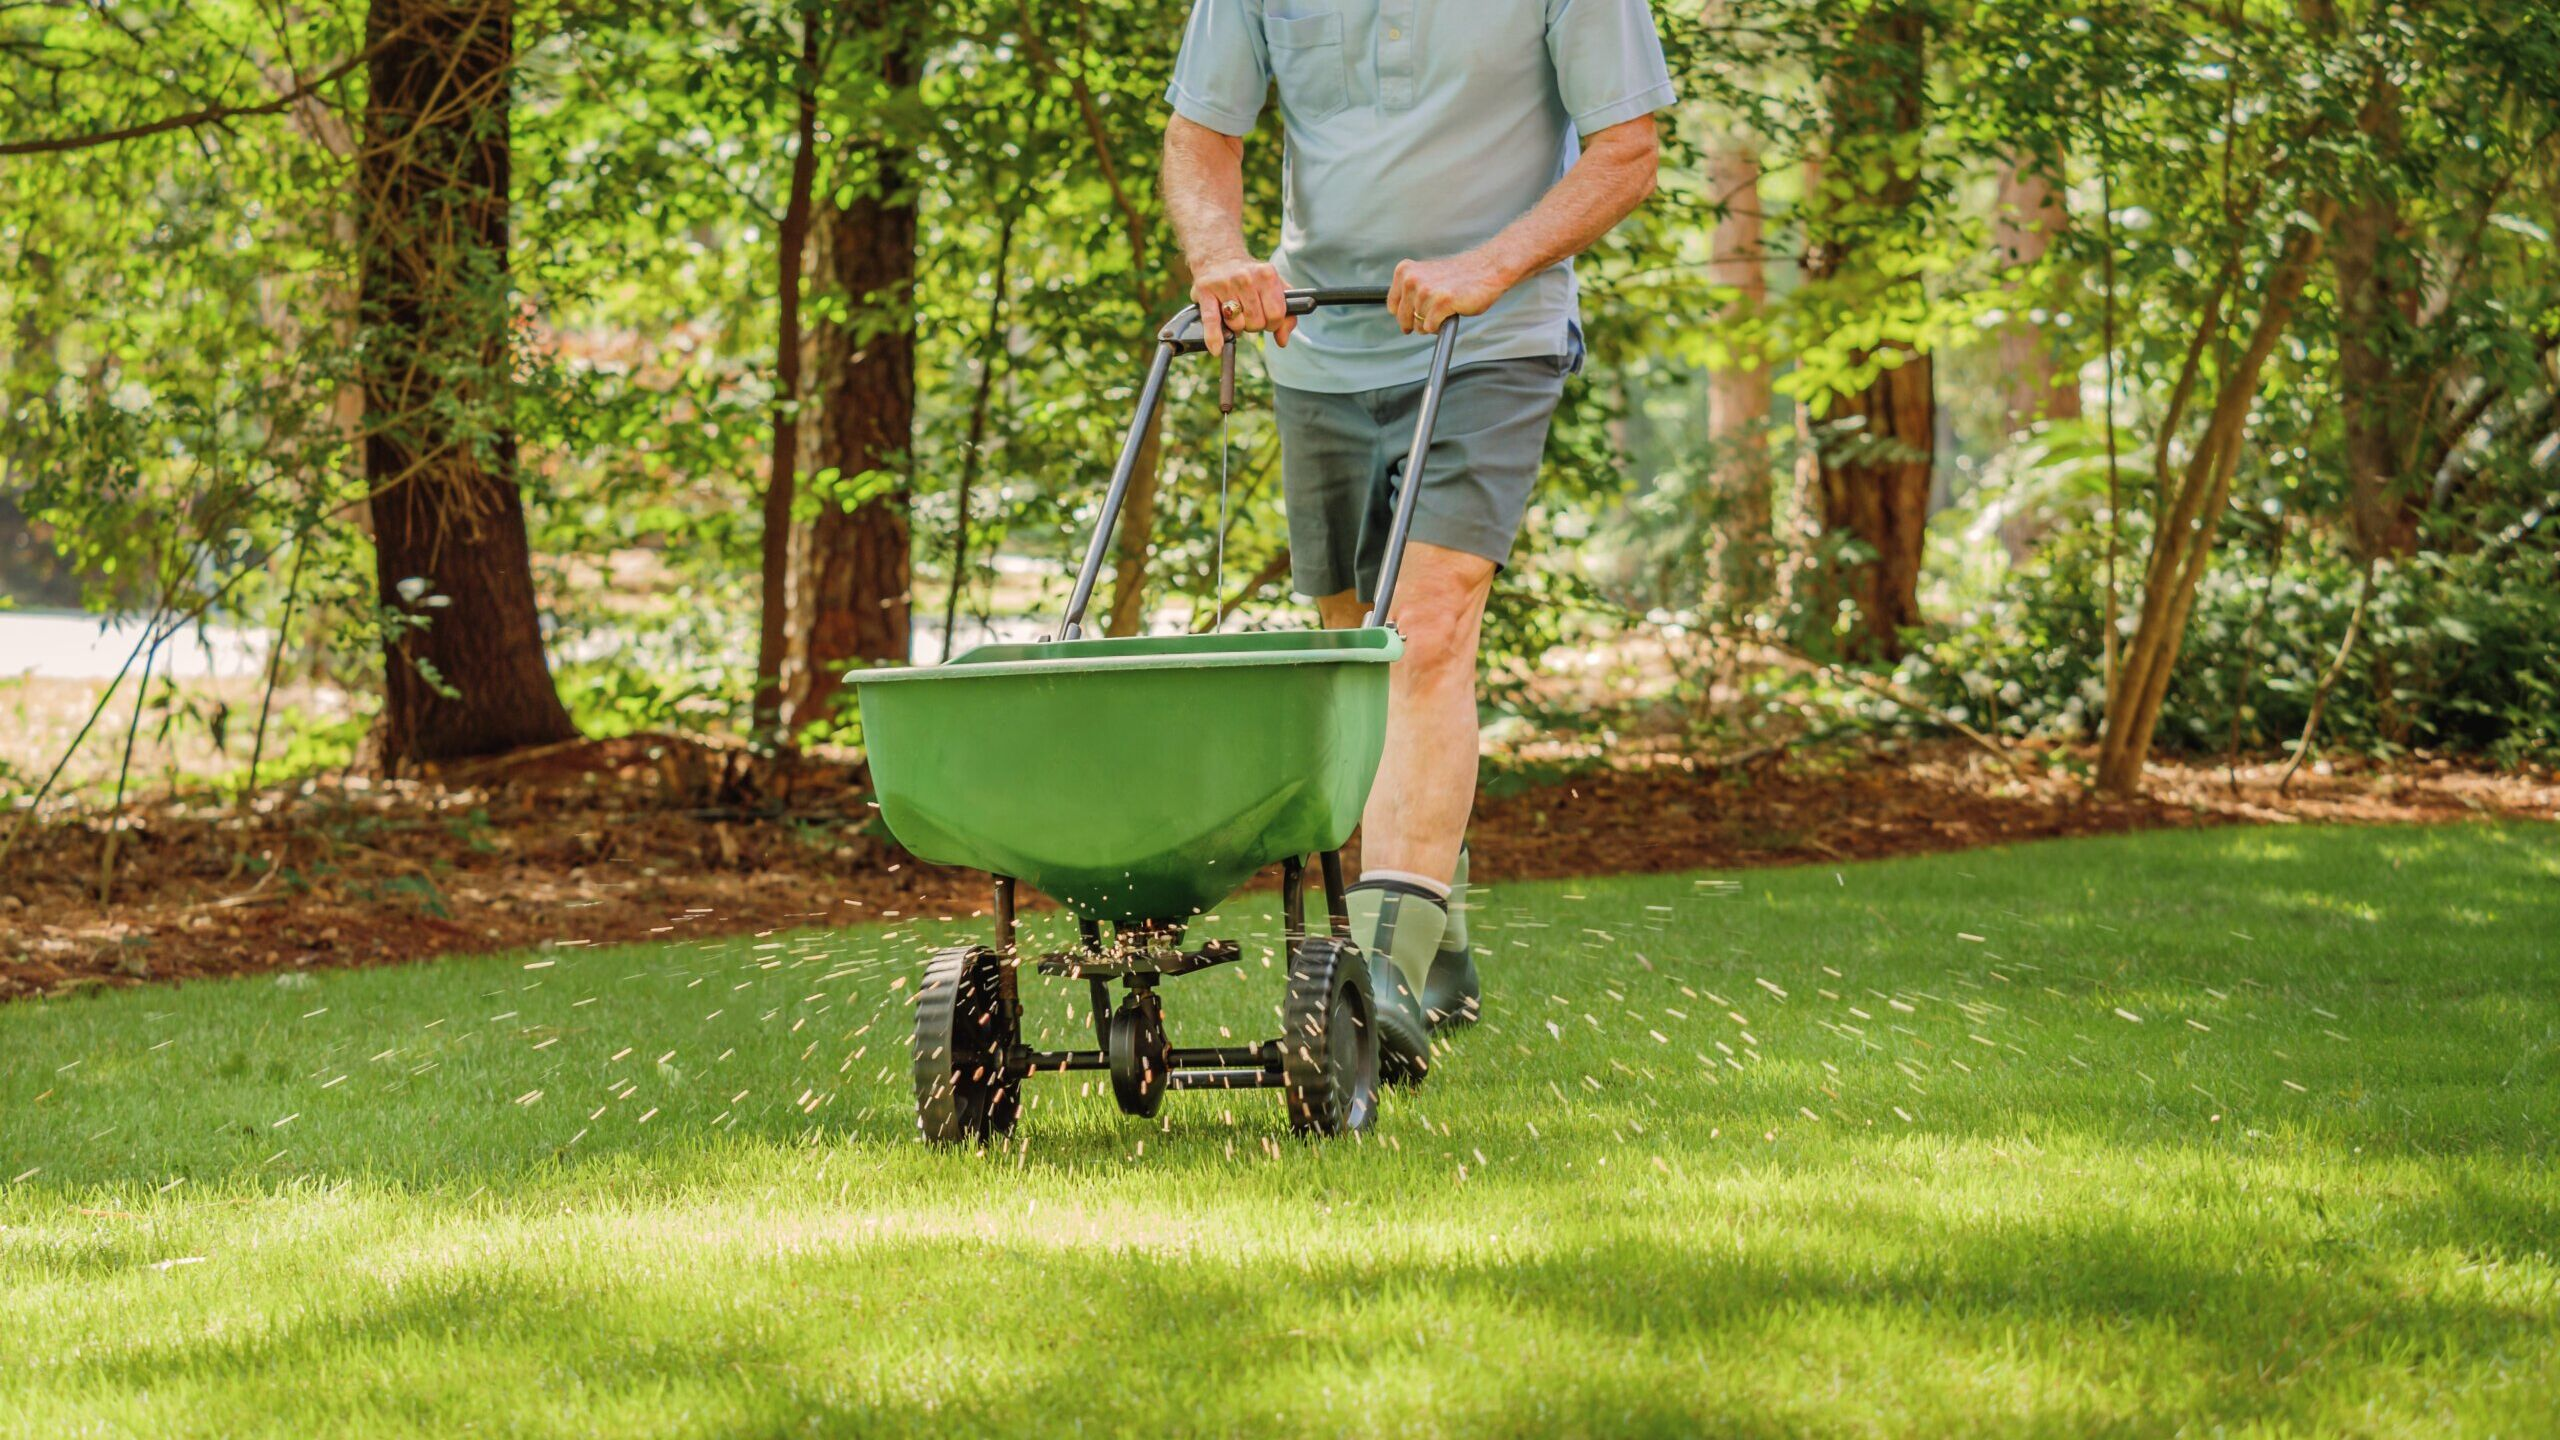 What Makes Lawn Fertilizer Important?